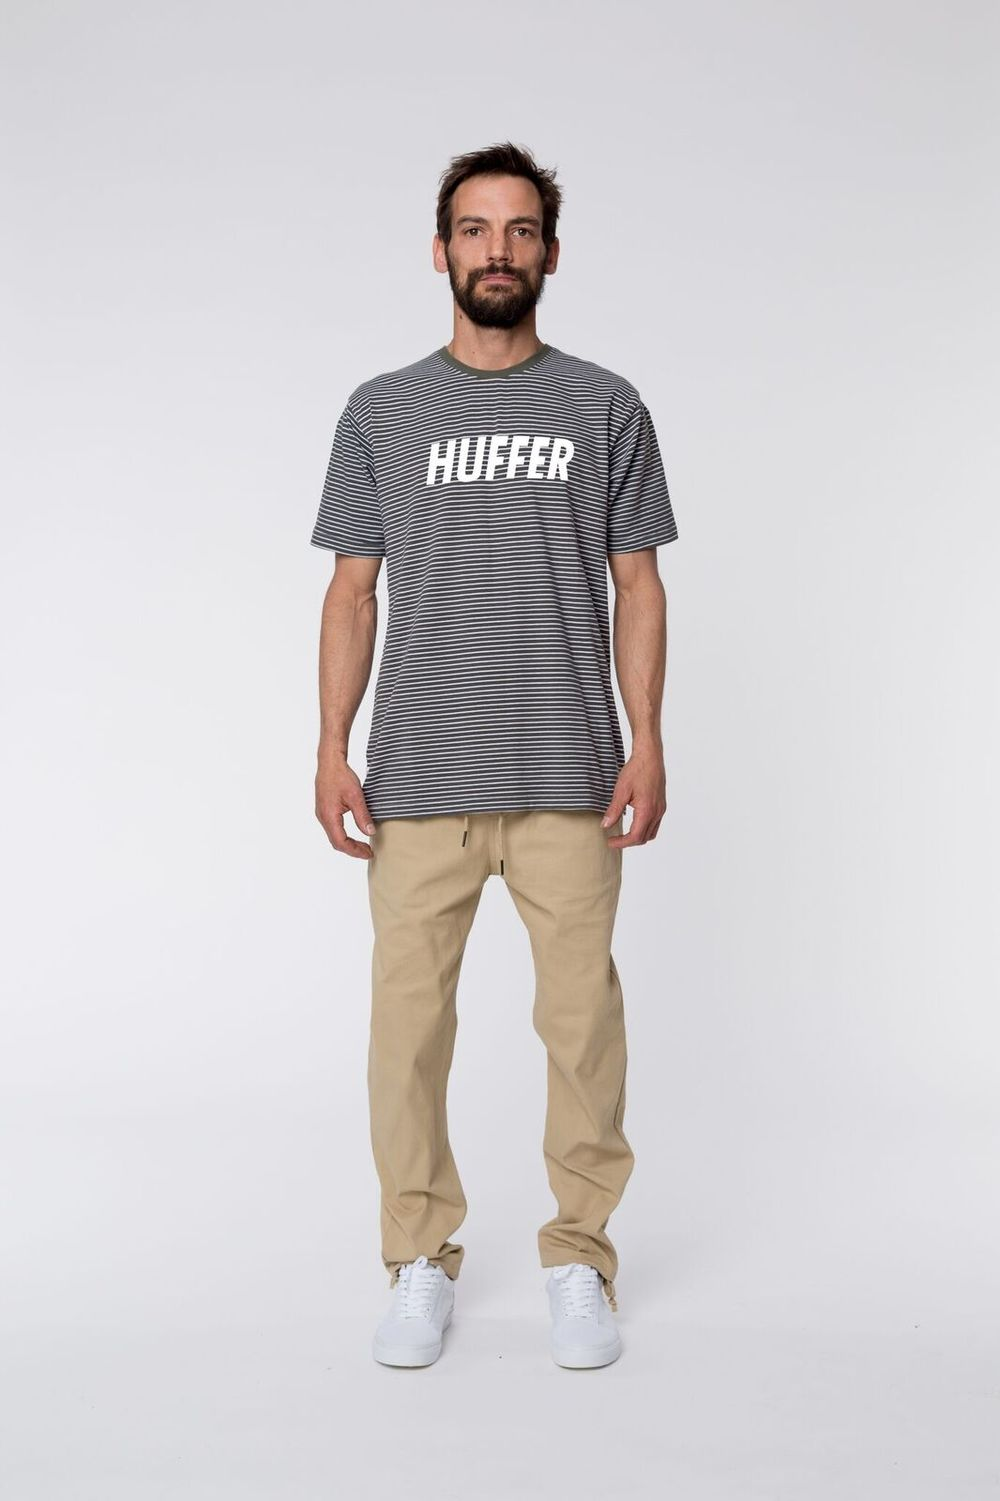 the horizon tee green.jpg